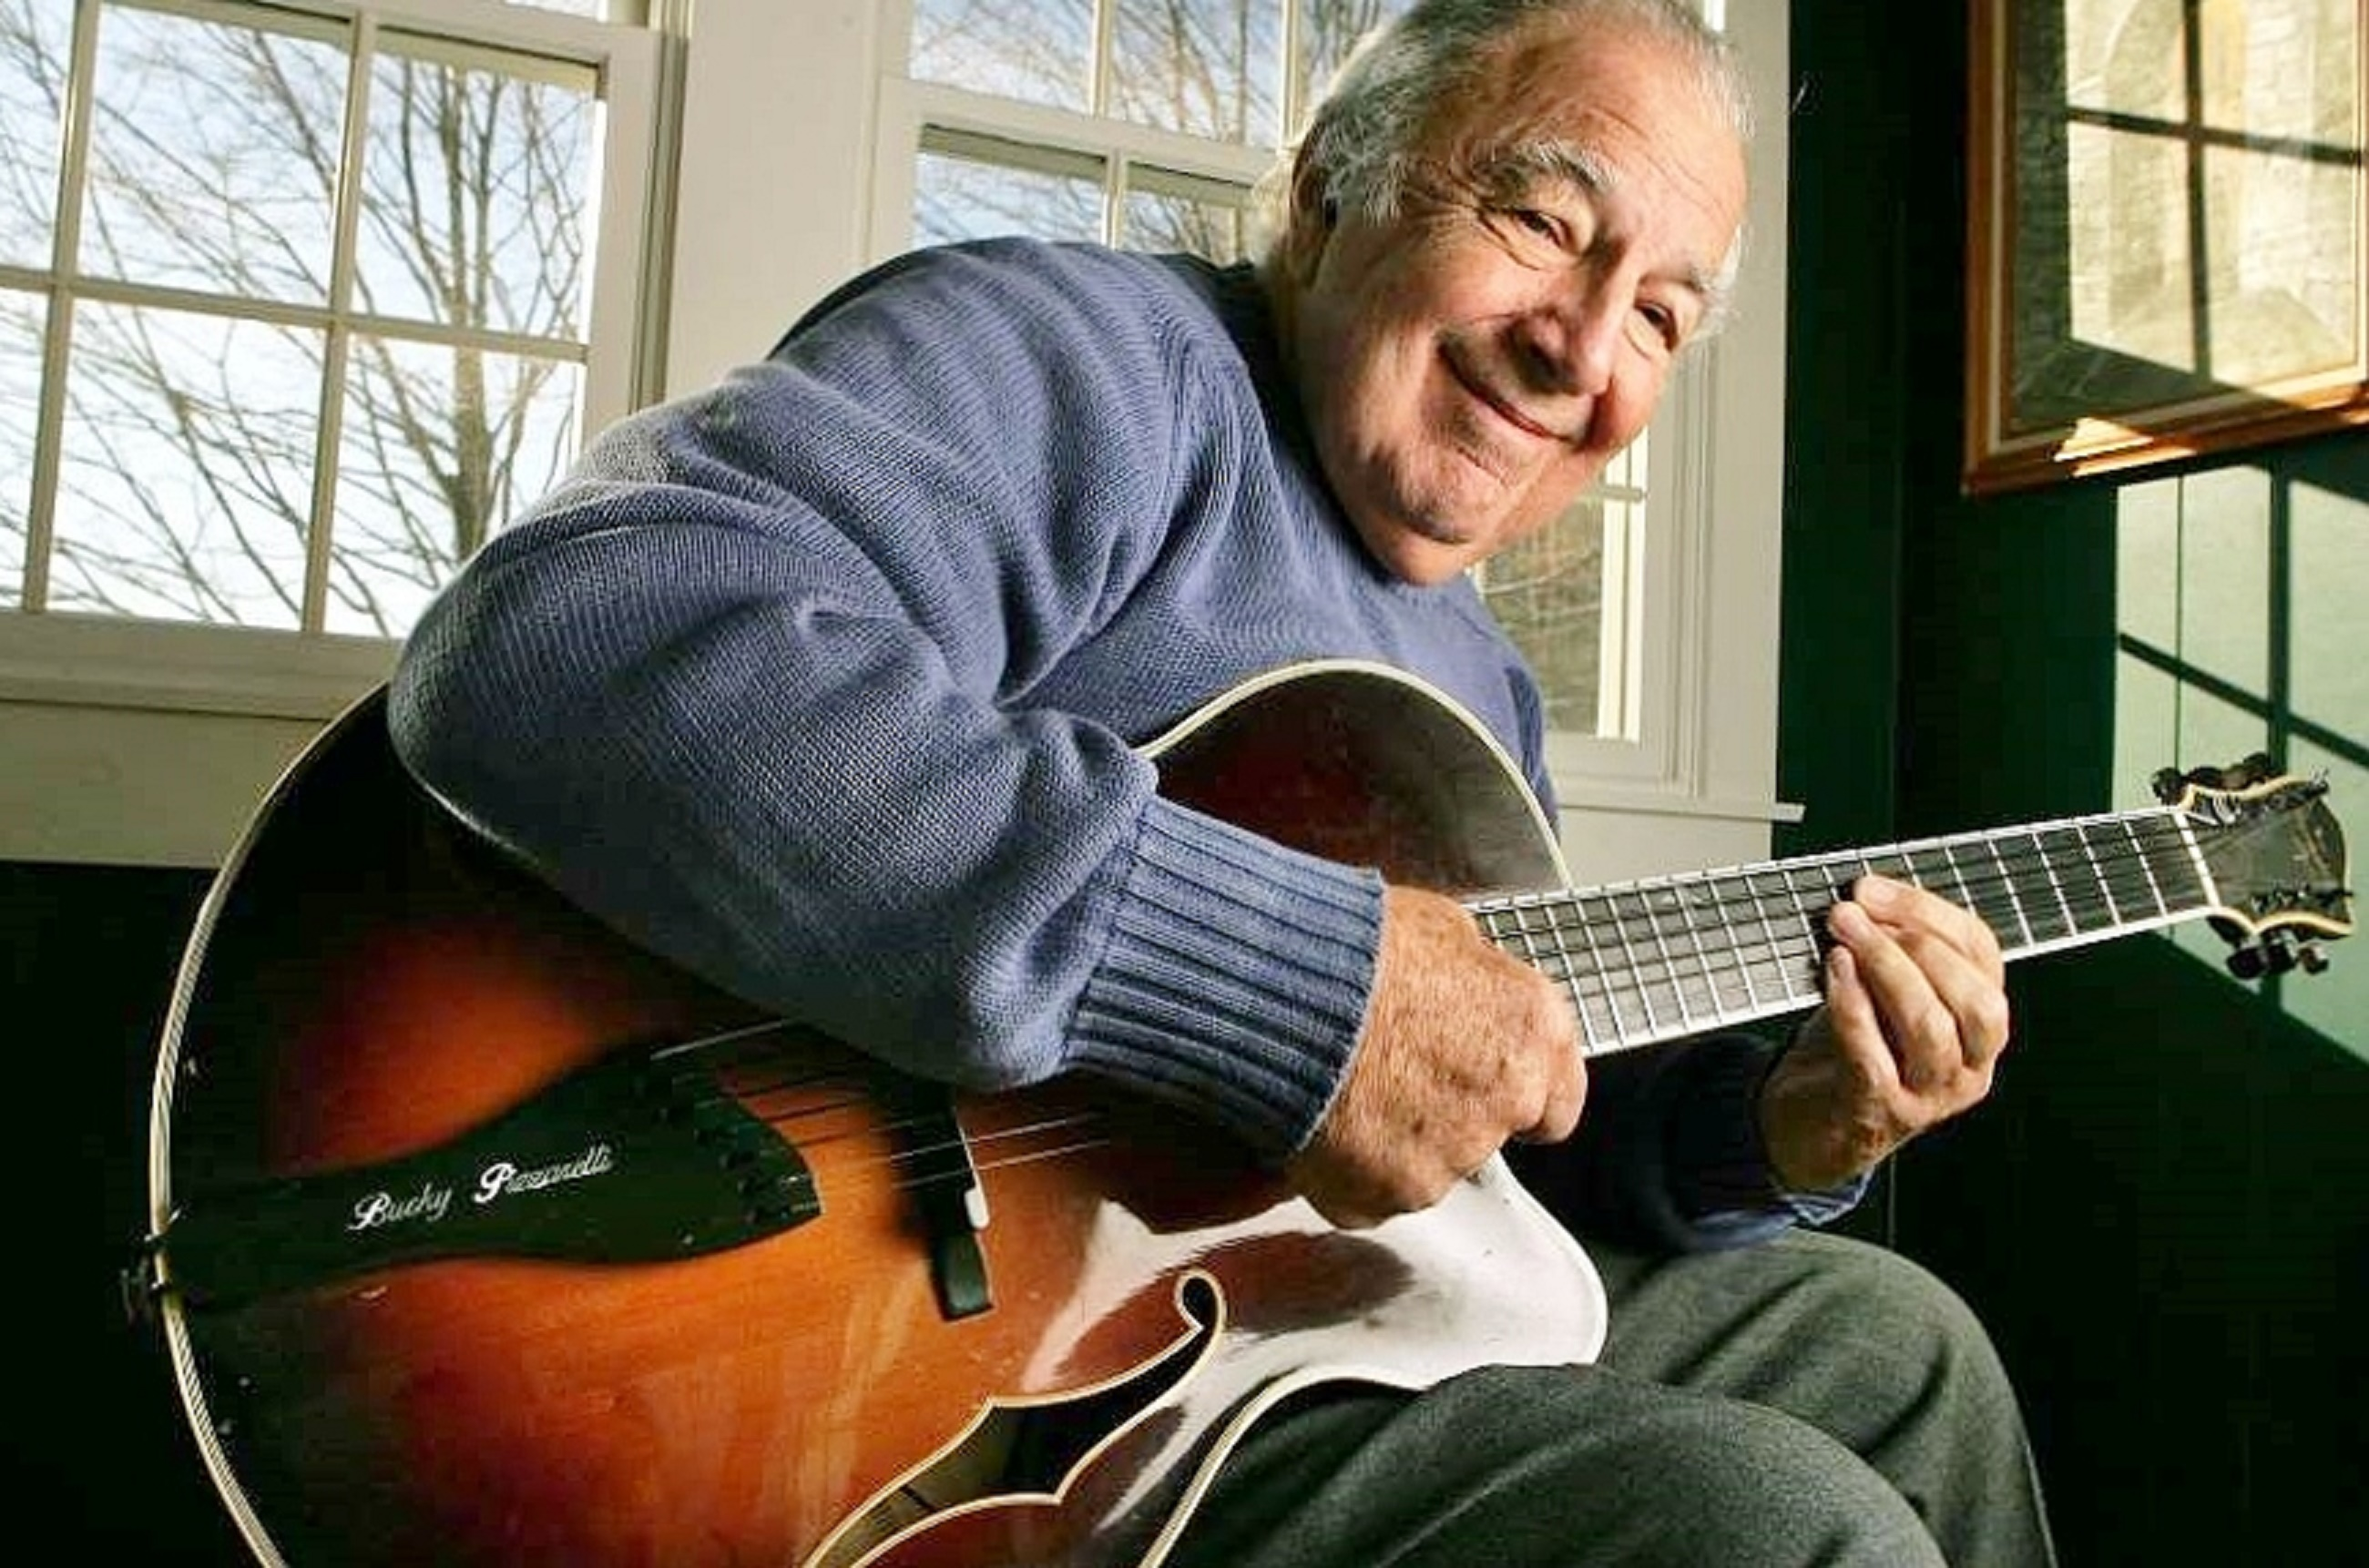 Bucky Pizzarelli at Home